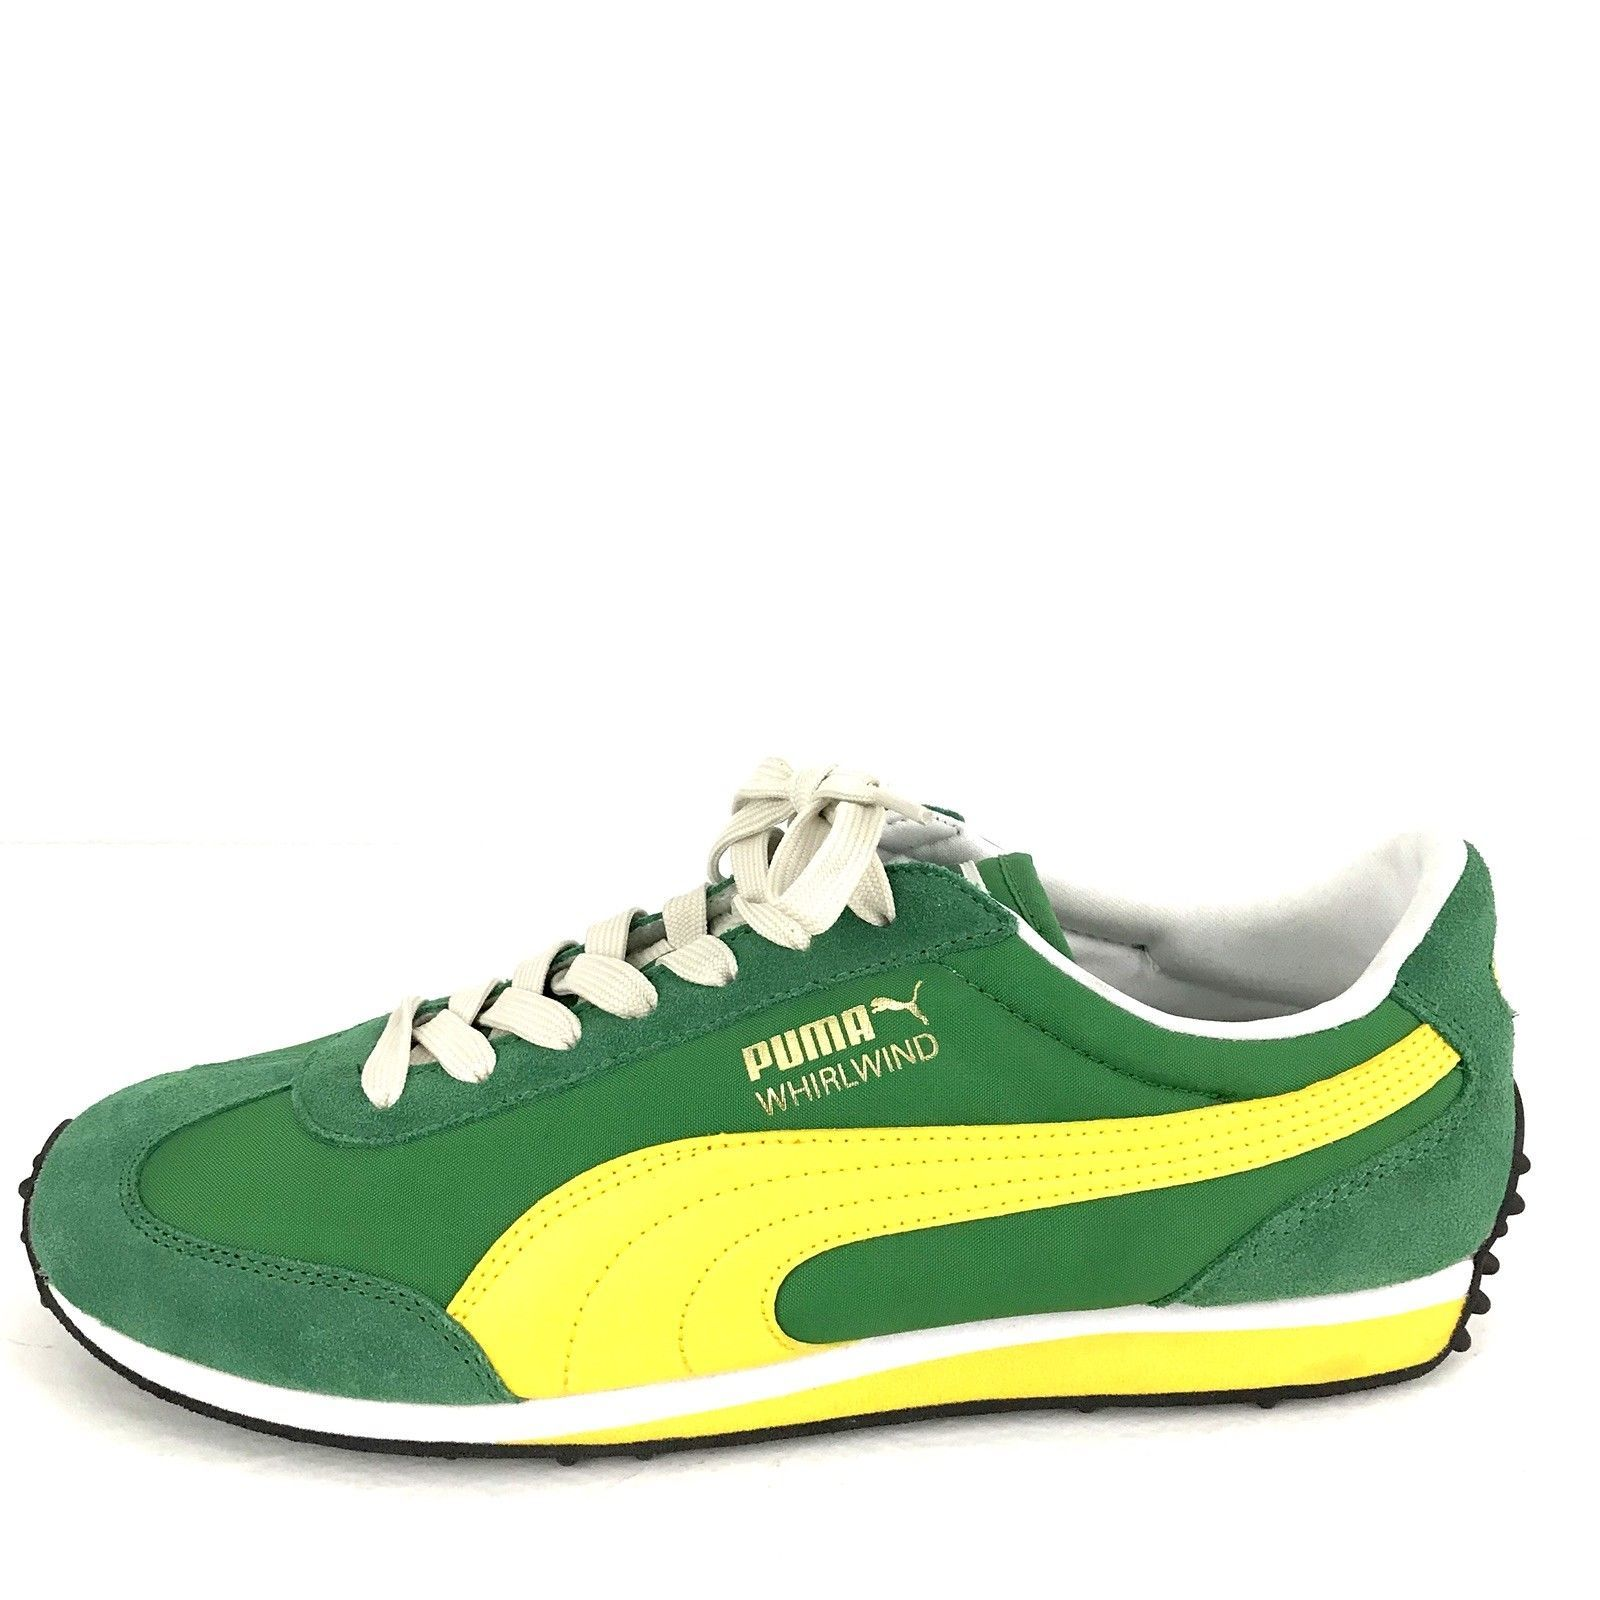 Puma Whirlwind Mens 8.5 Green Jamaican and 50 similar items e6f517b95